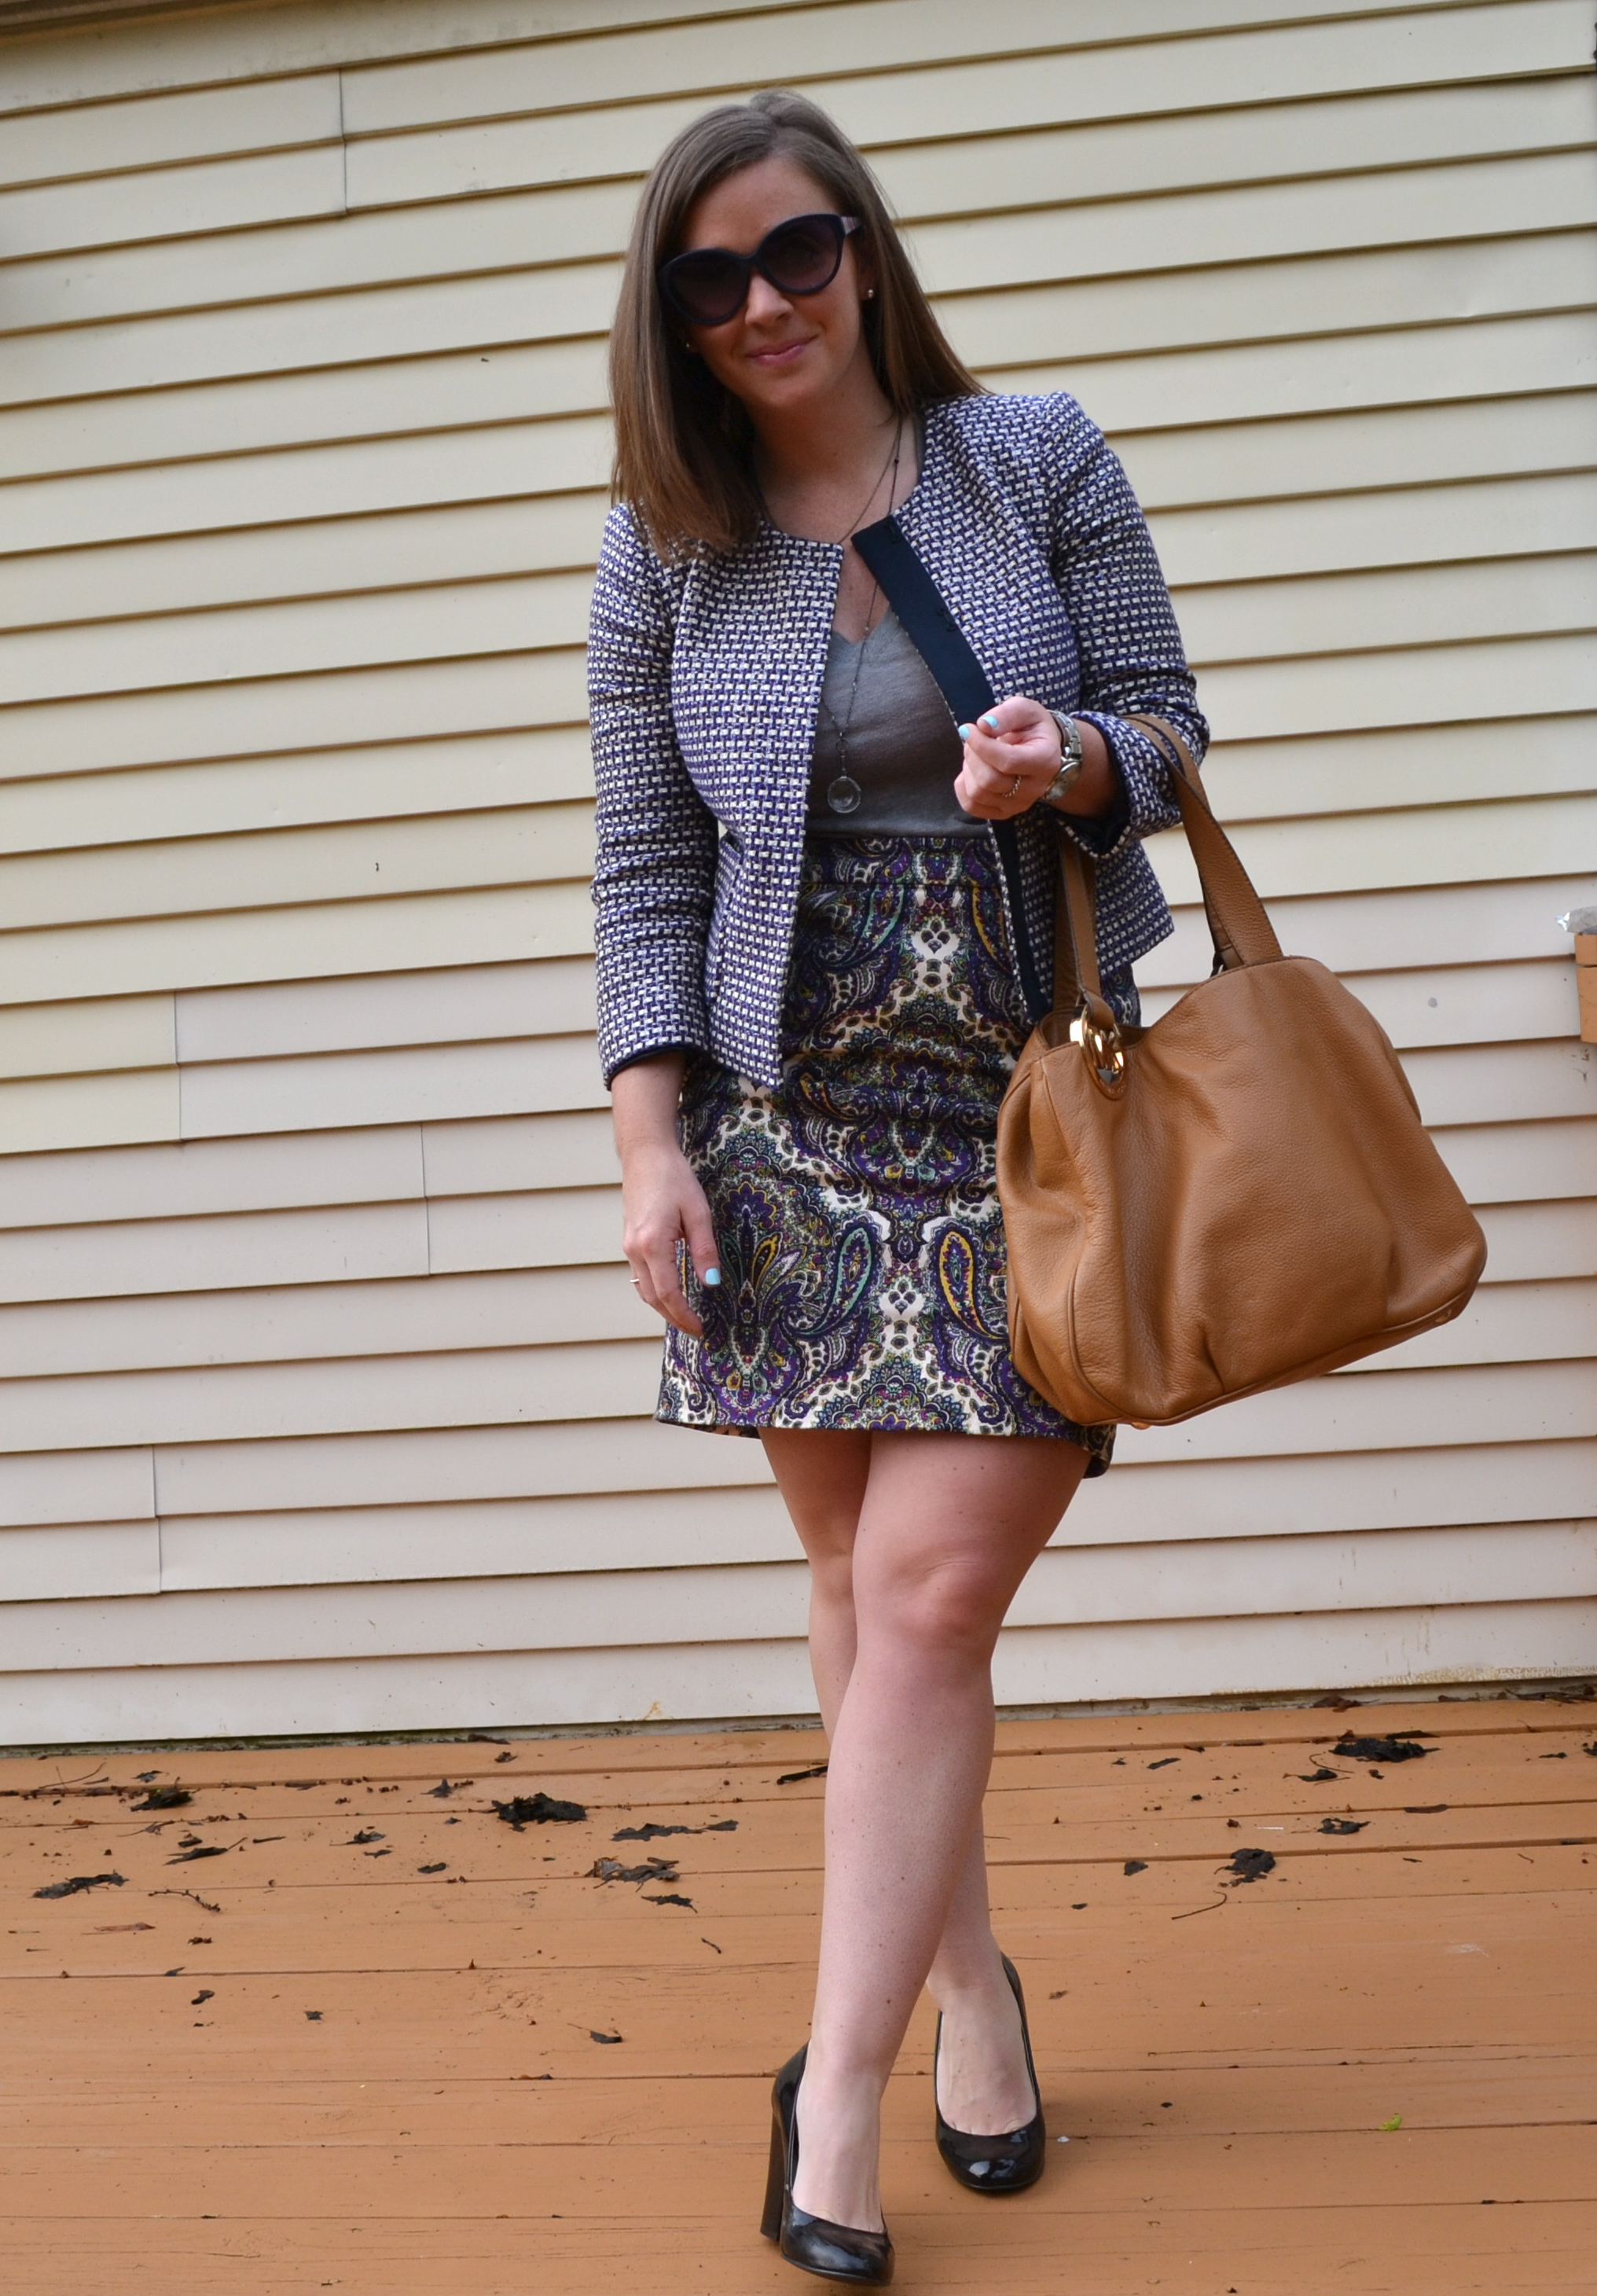 d8be774461 Skirt, J.Crew Factory (other colors and prints here)/ Tshirt, Forever21  (here or another option here)/ Tweed Jacket, J.Crew (purchased this fall  but similar ...